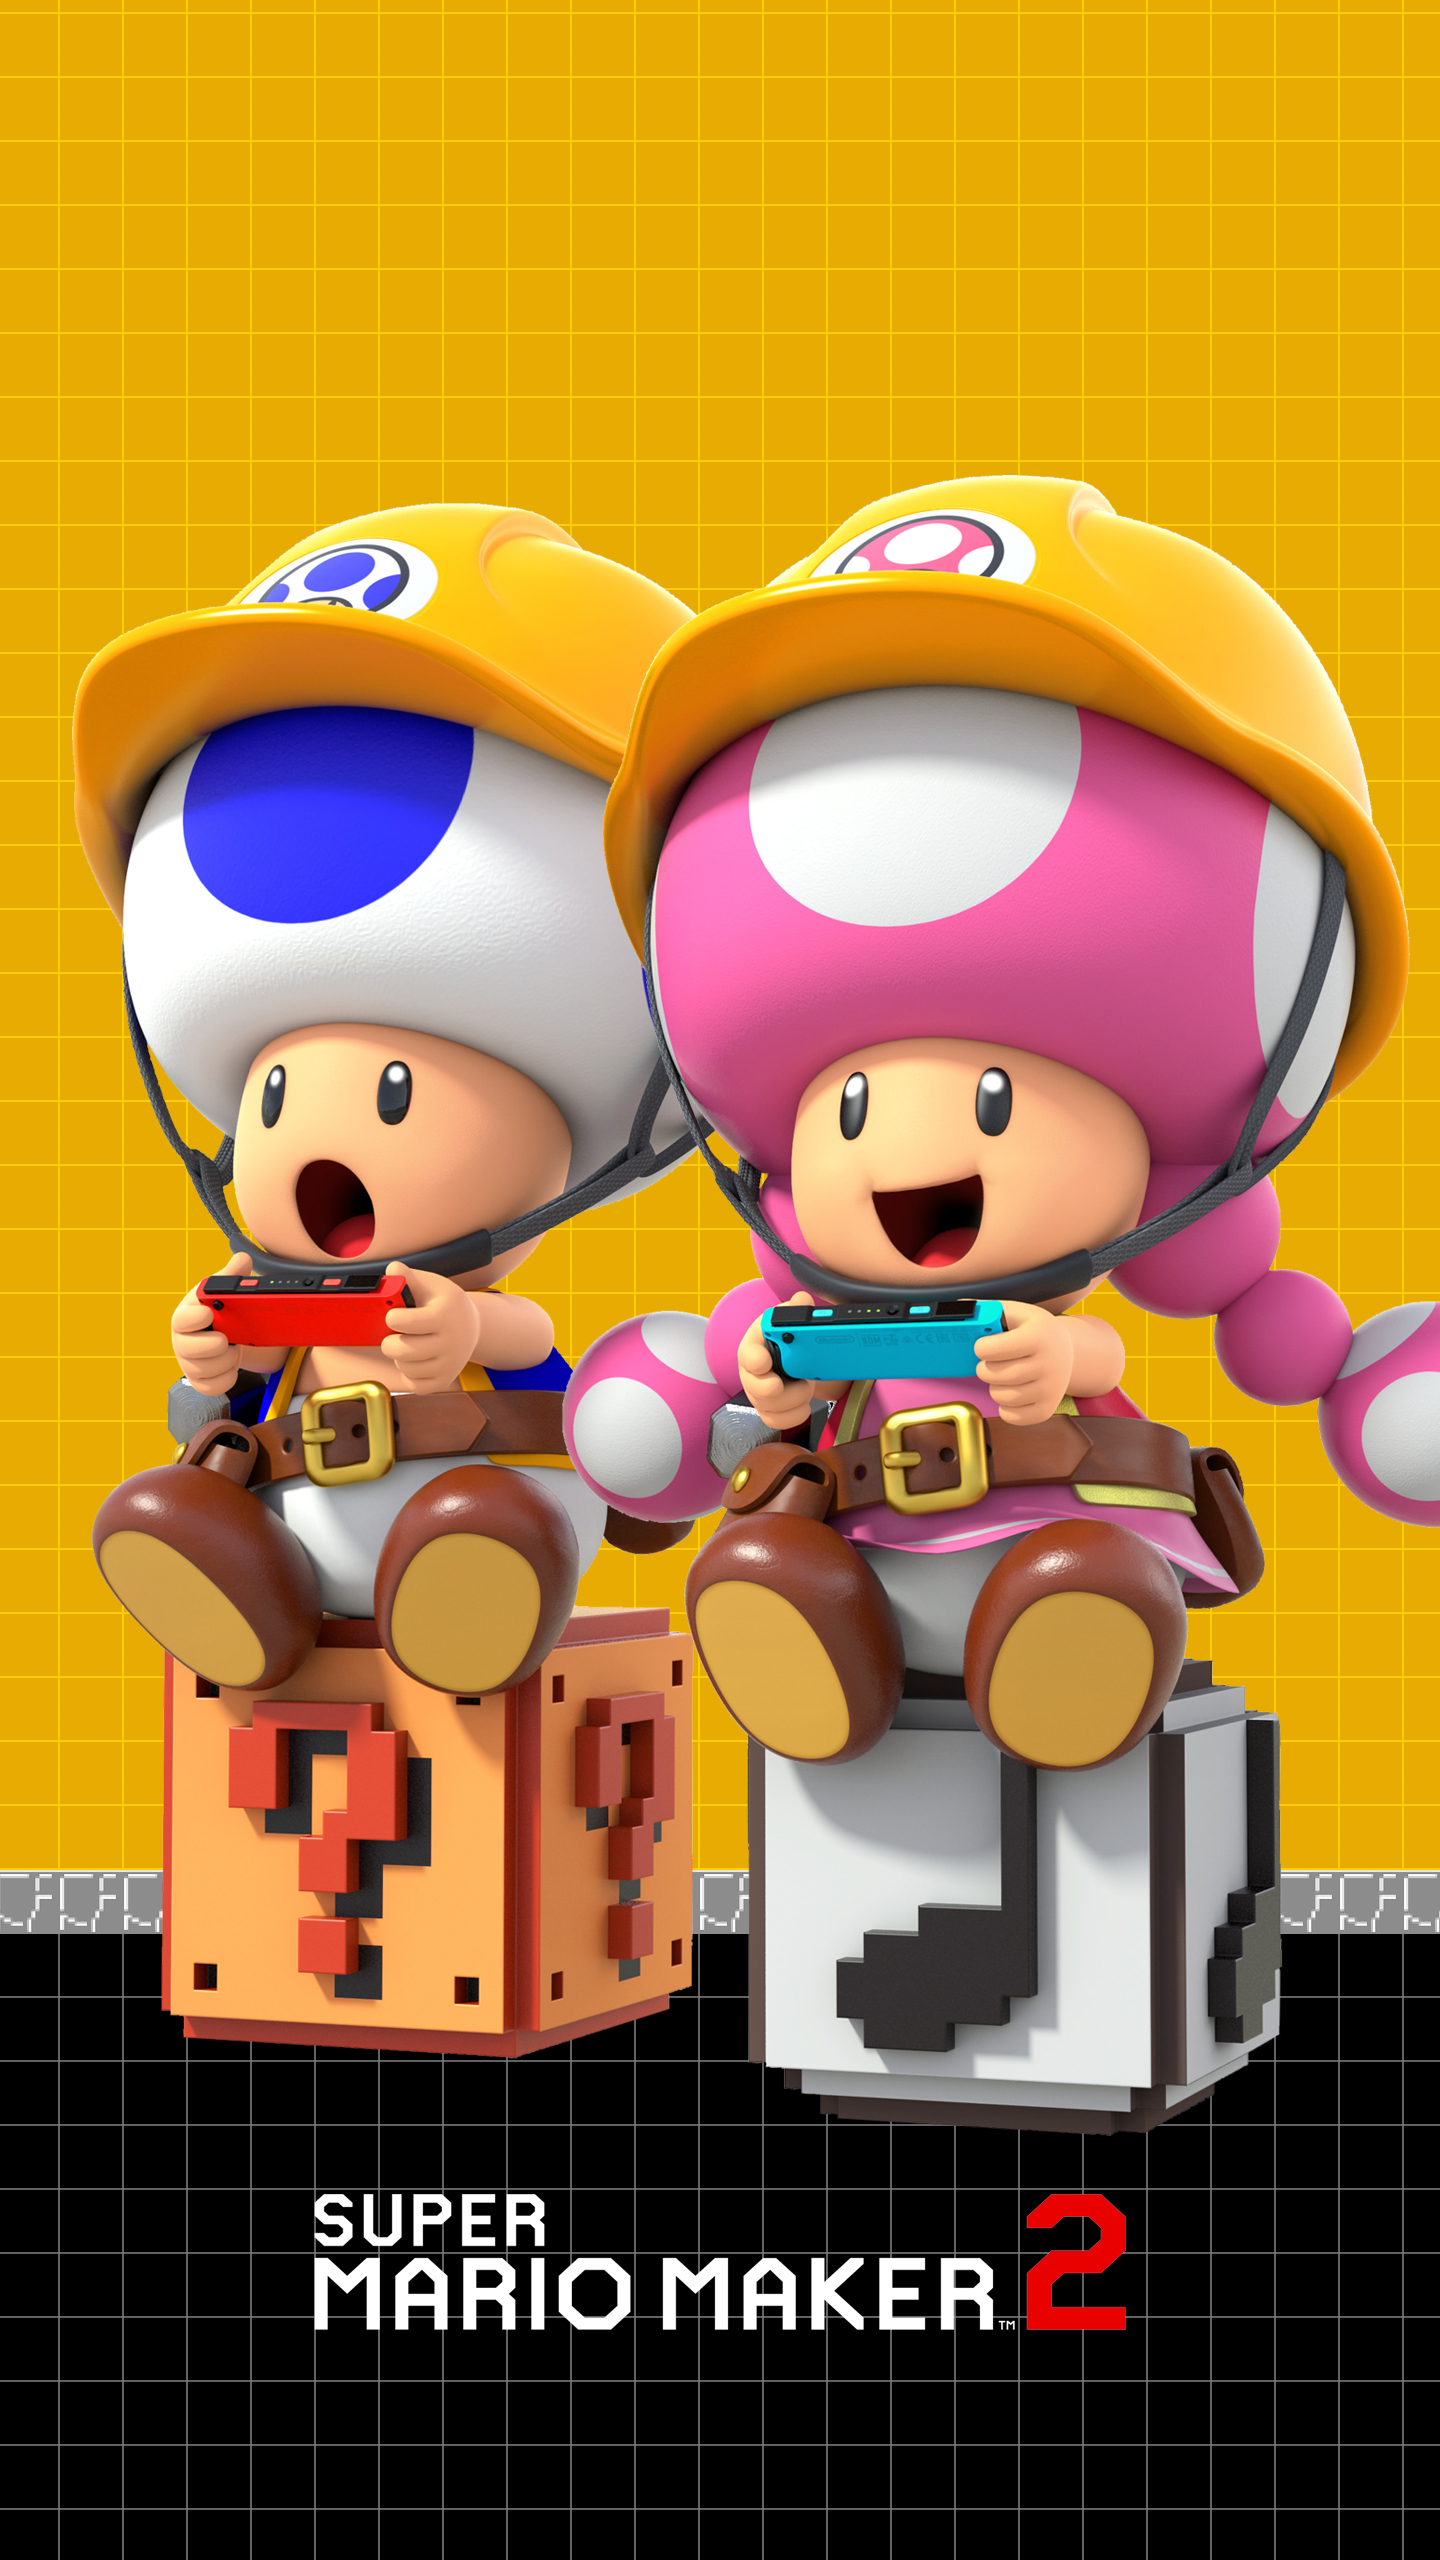 Super Mario Maker 2 Toad And Toadette Wallpaper Cat With